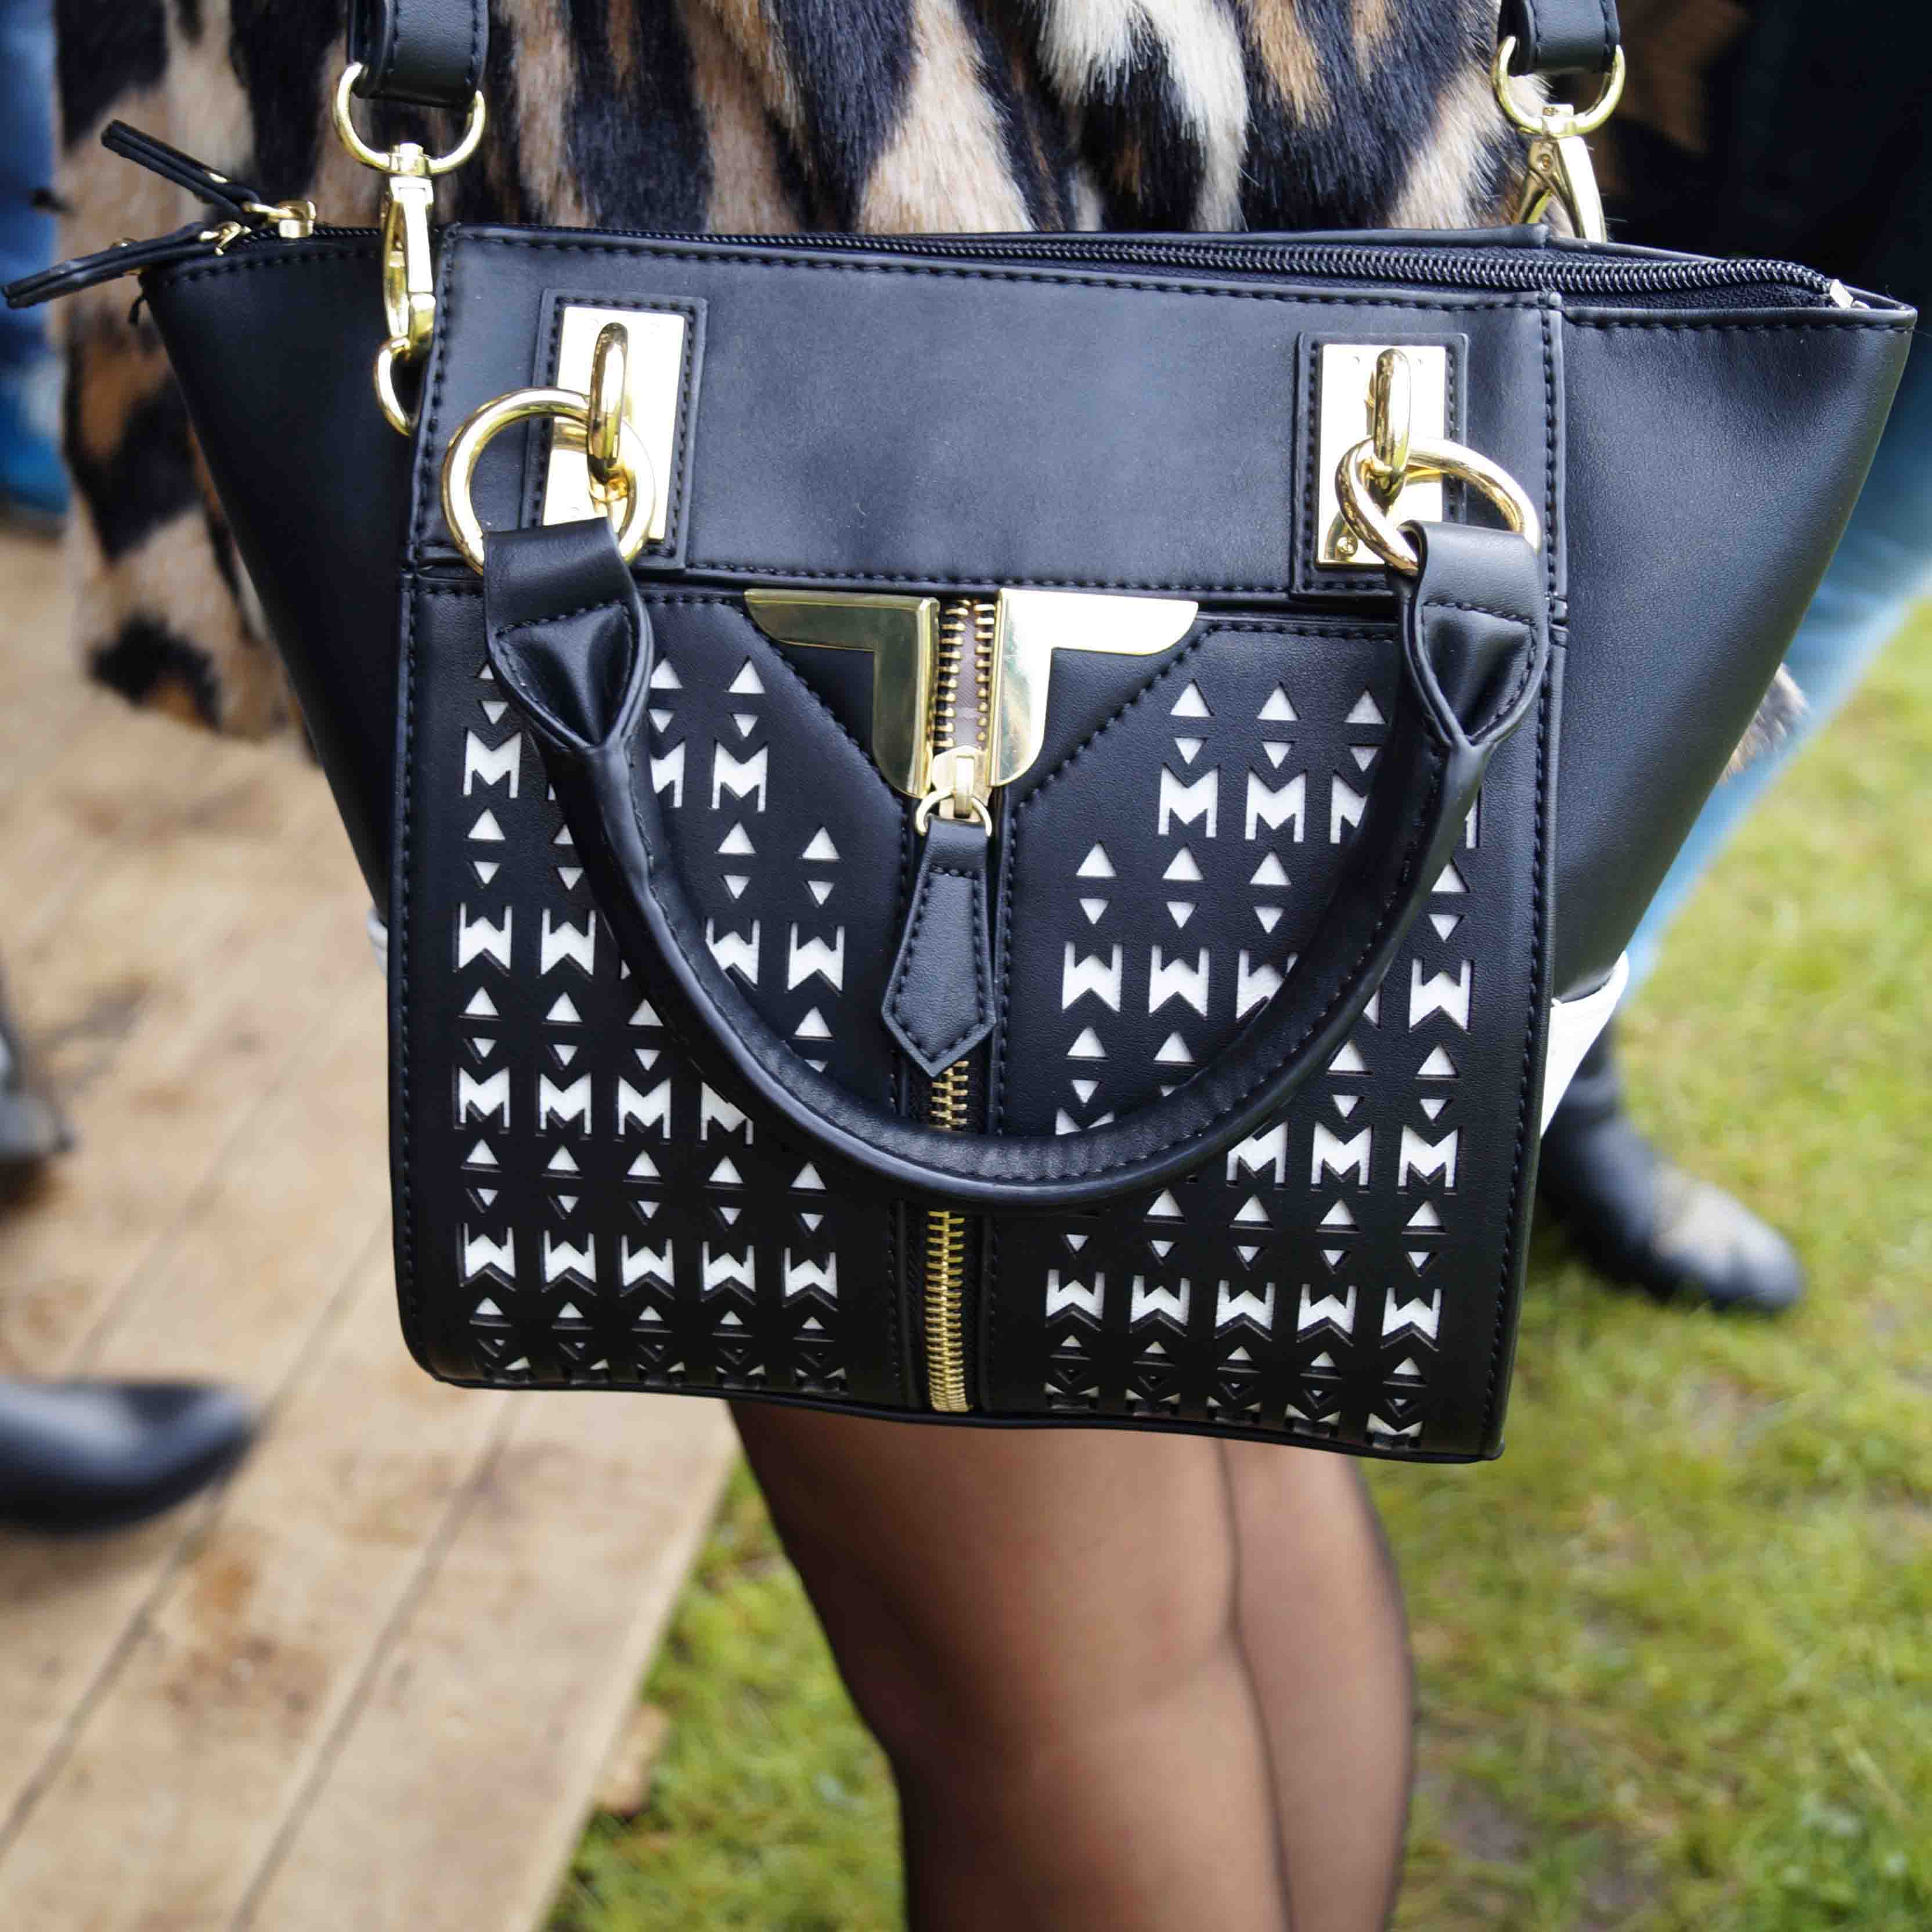 Bag at You - Fashion Blog - Fierce Fashion Festival - New York City Bag - Tassen